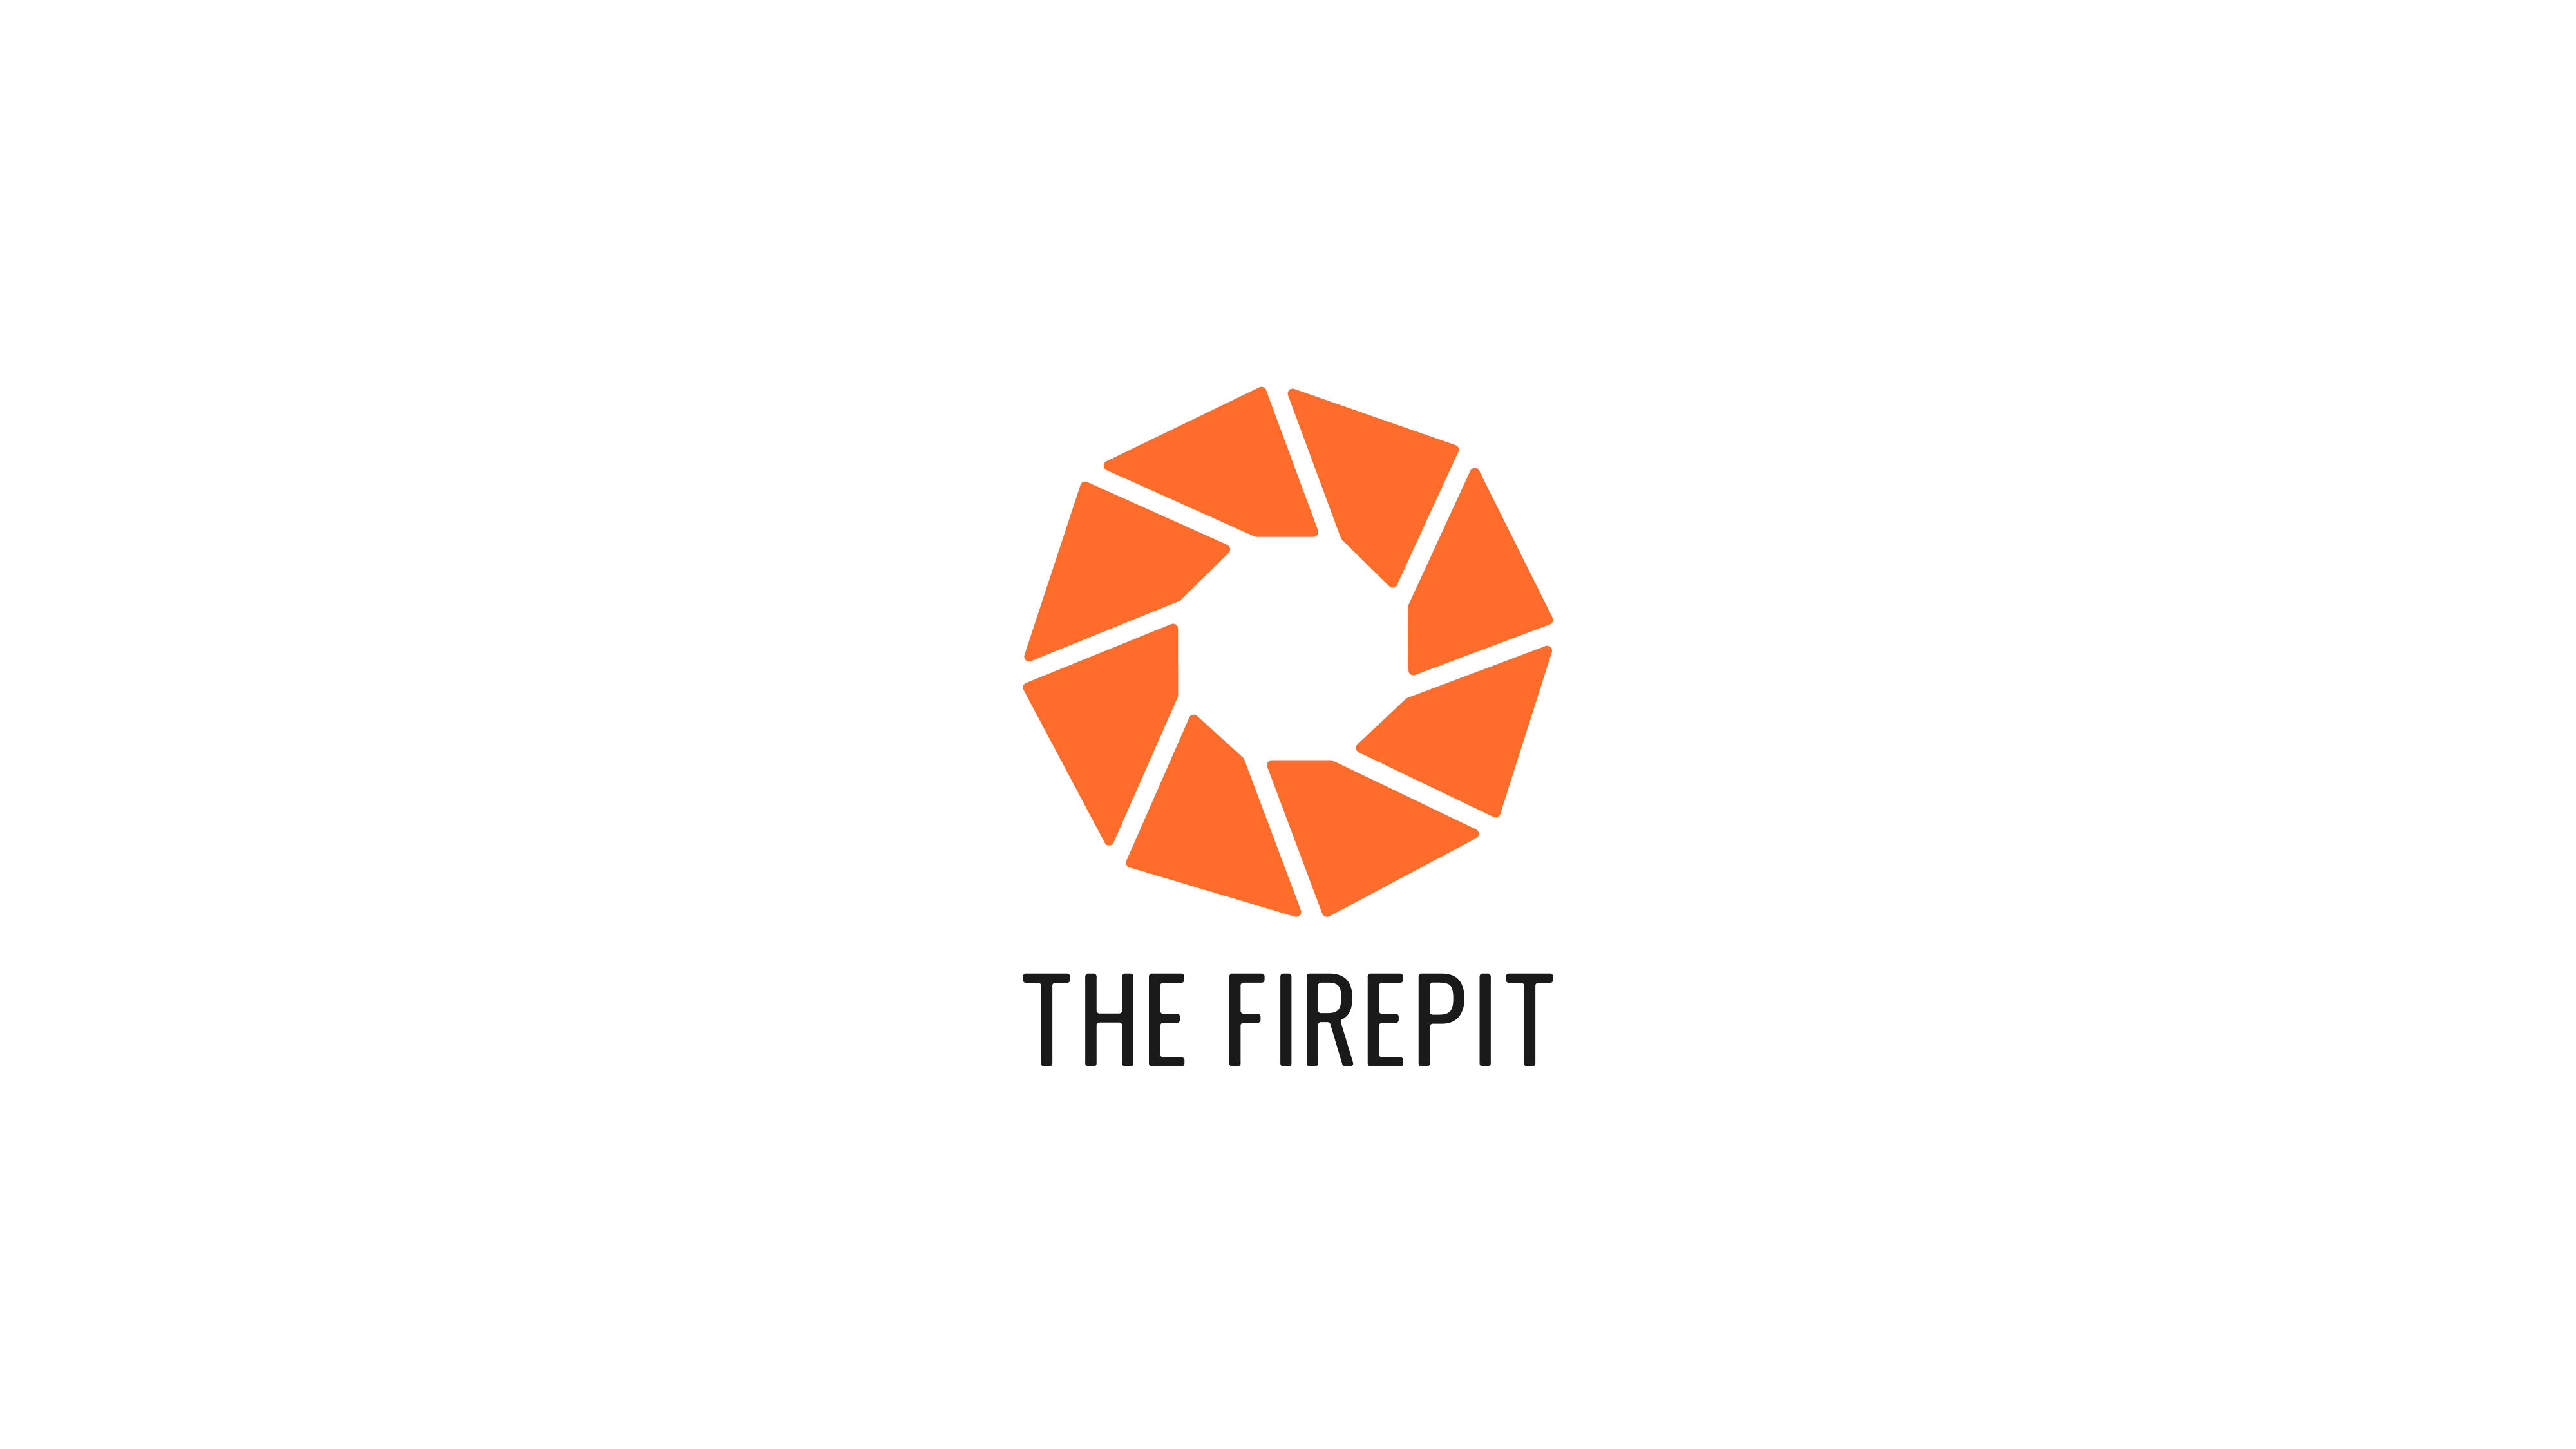 THE_FIREPIT_PRIMARY_LOGO_COLOUR_BLACK